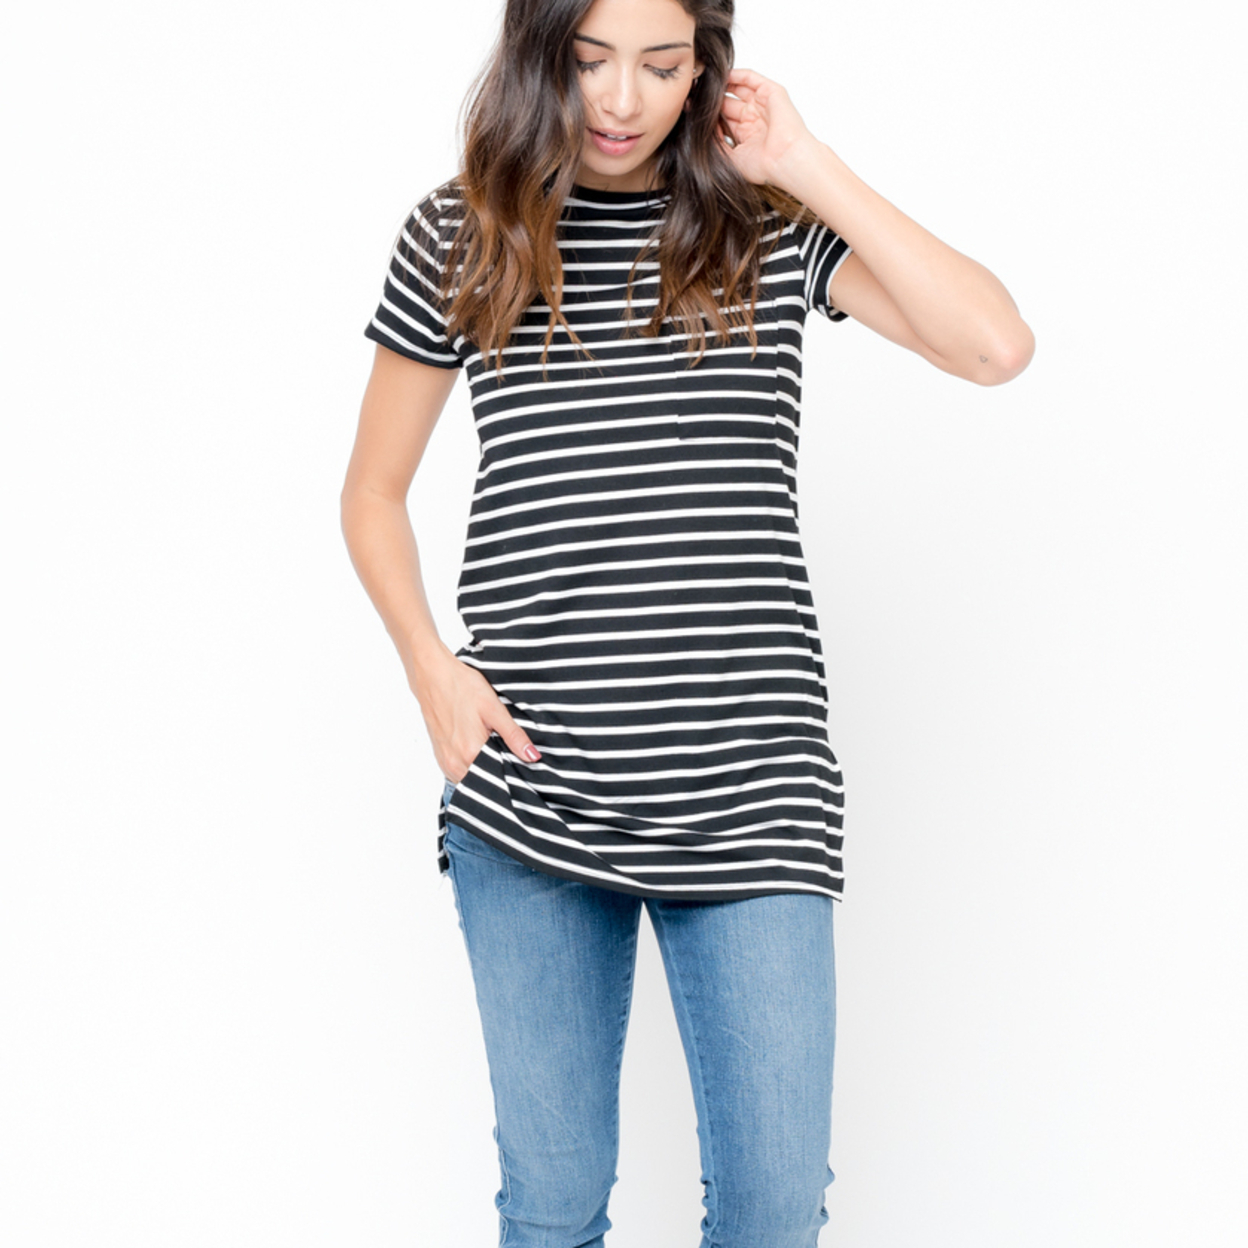 Striped Short Sleeve Tee - S, Black 59e7e9a0c98fc473cc378a57